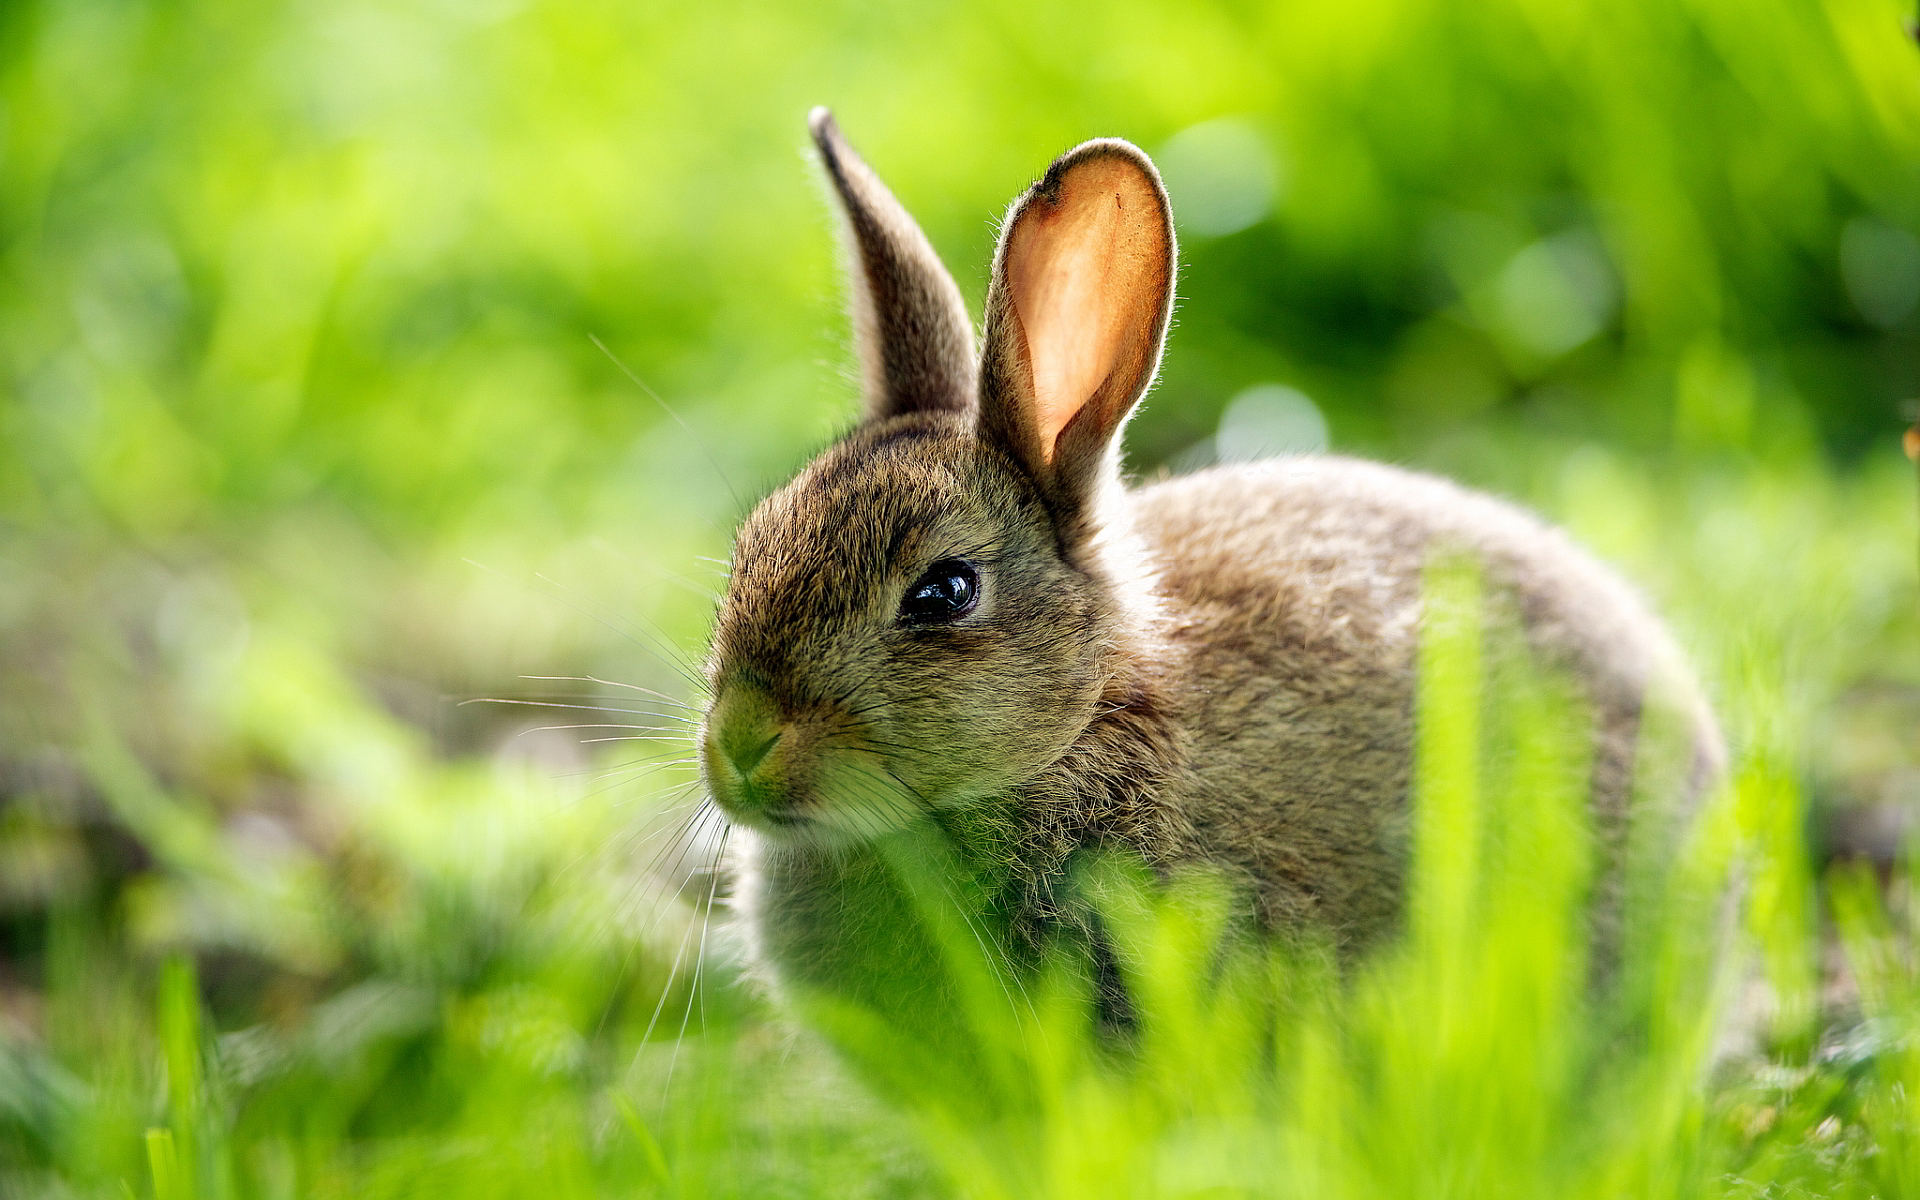 Cute rabbit grass